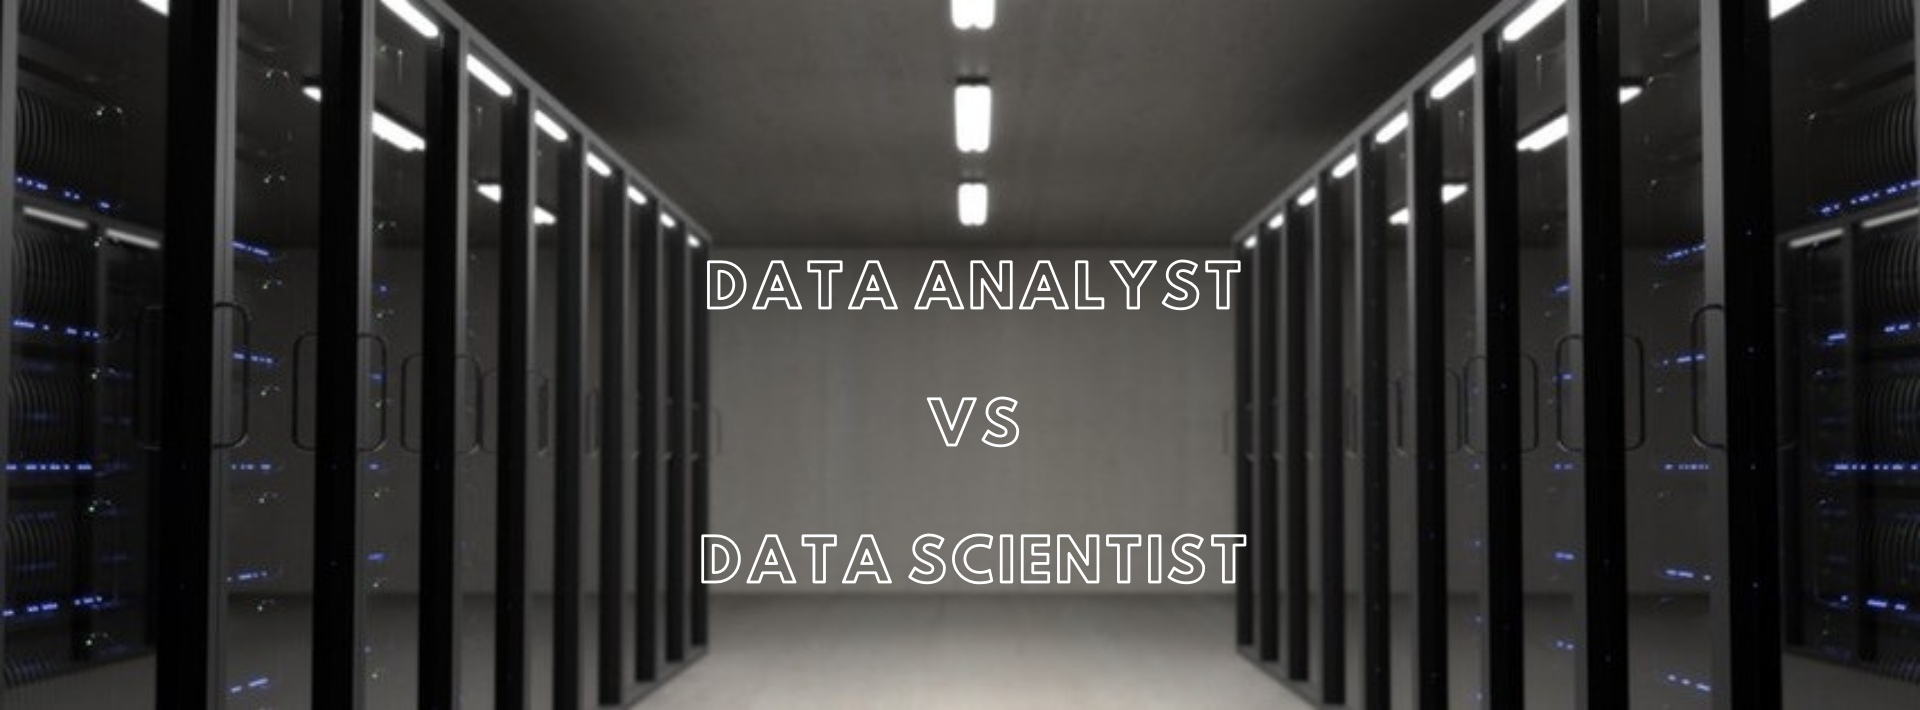 Data Analyst vs Data Scientist: A Comparison